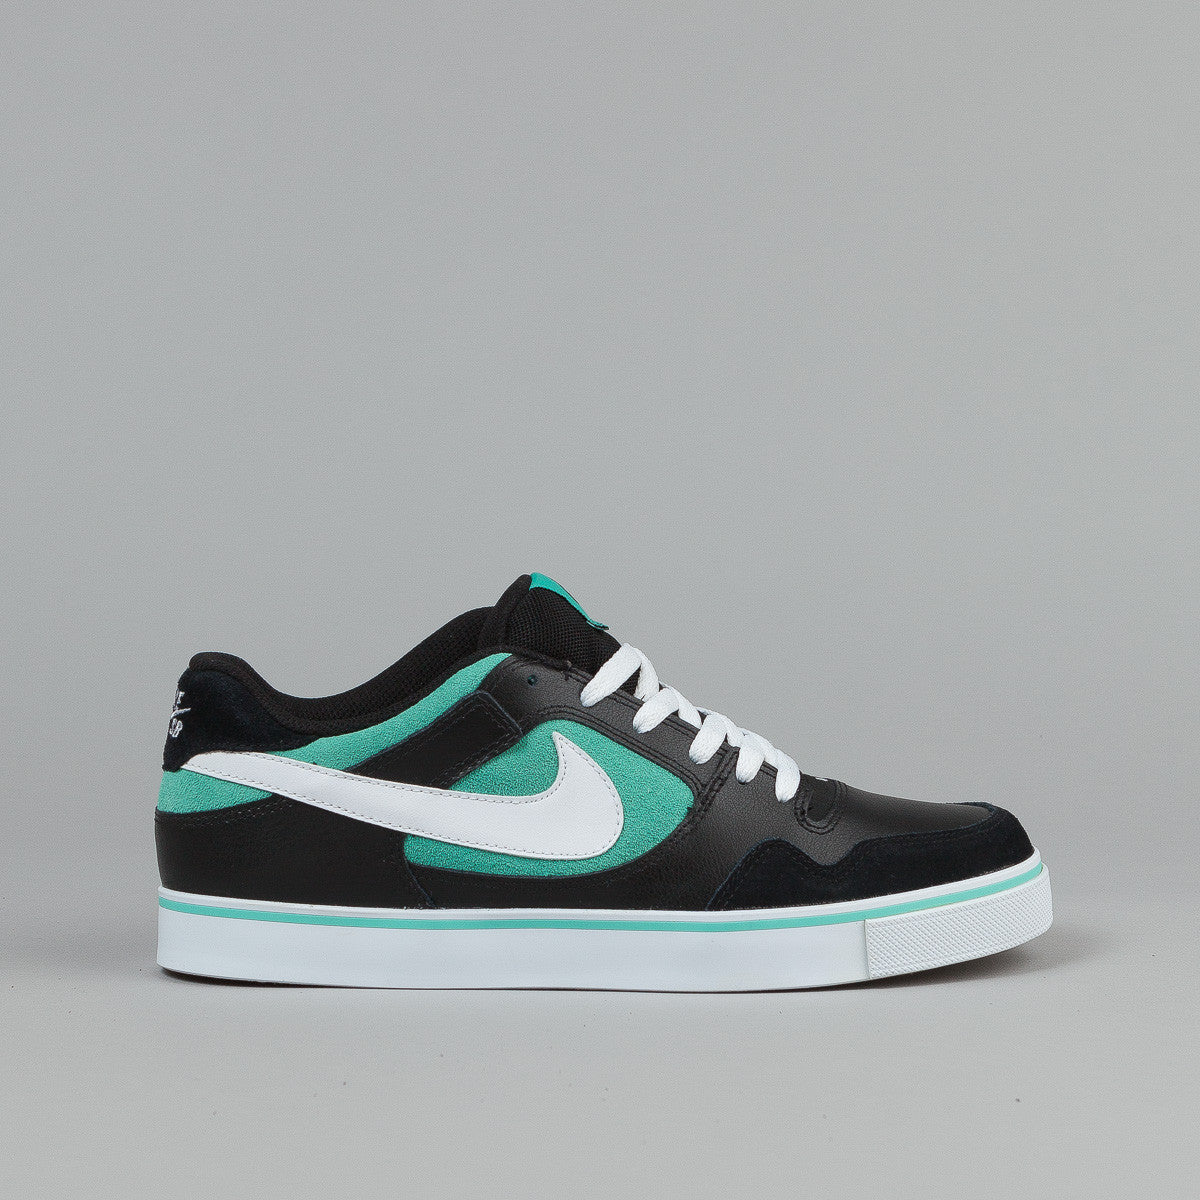 Nike SB Paul Rodriguez 2.5 Shoes